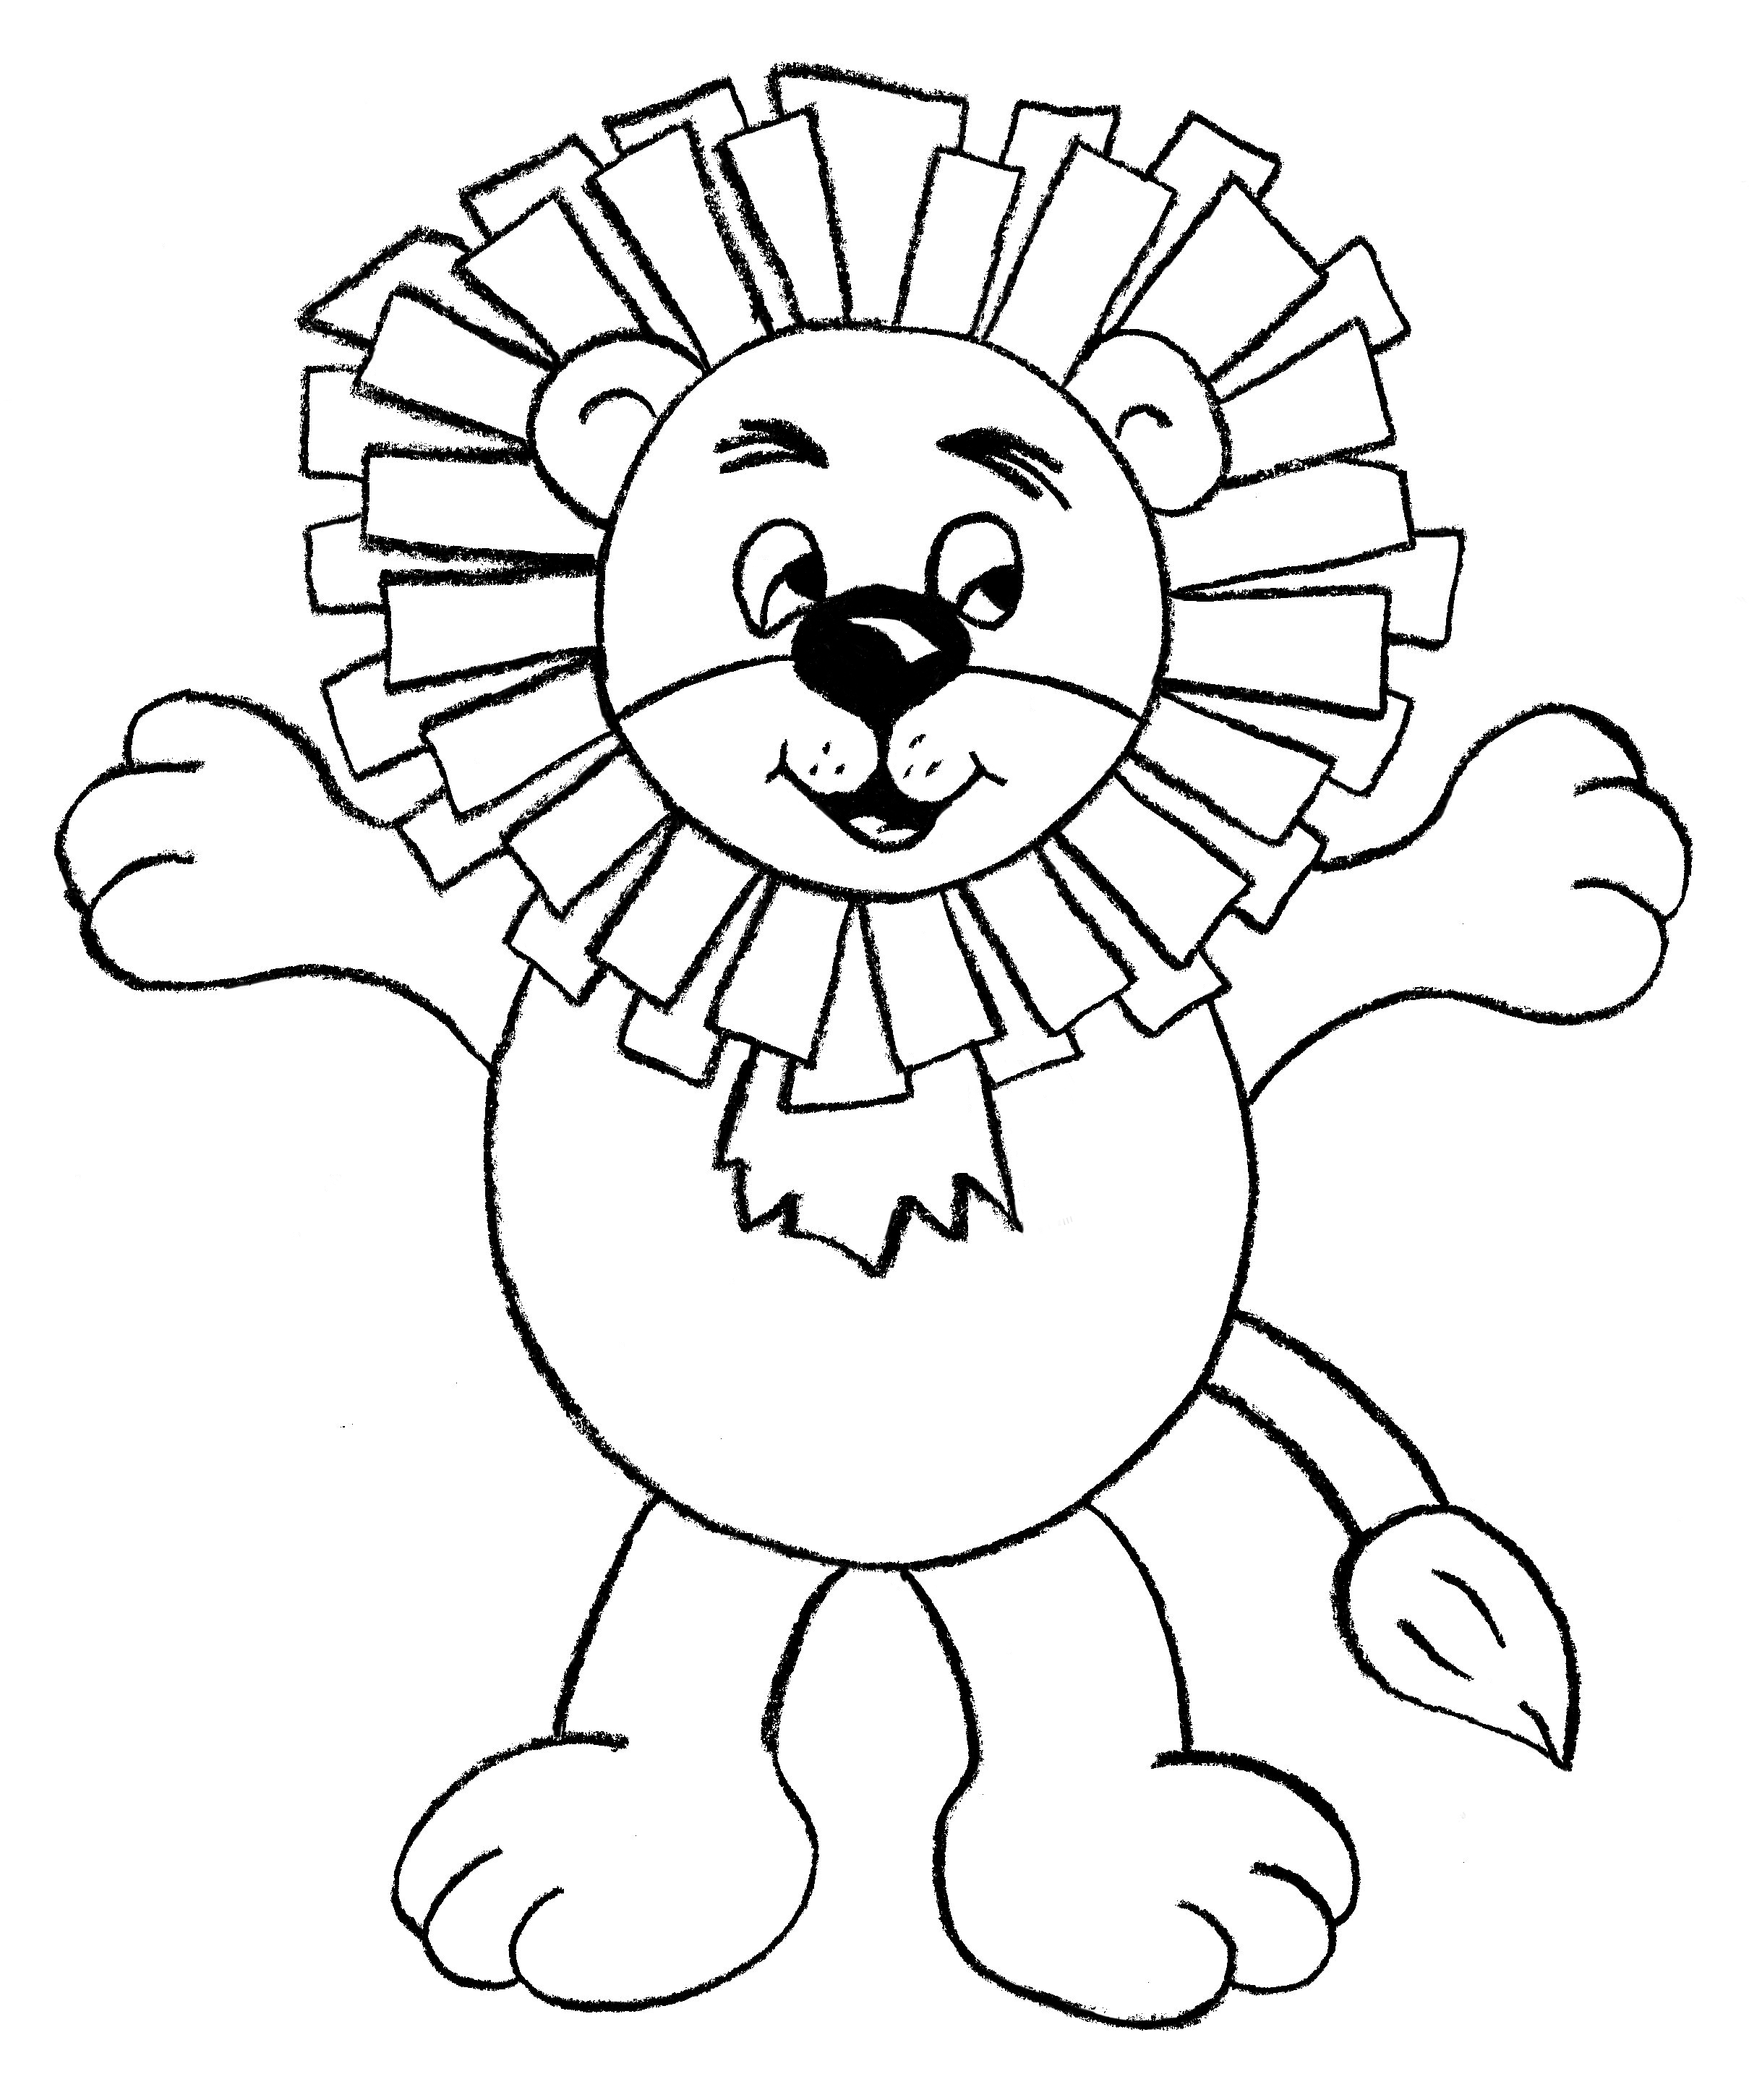 leo the lion coloring pages leo print zodiac signs colors zodiac art coloring pages lion leo coloring the pages